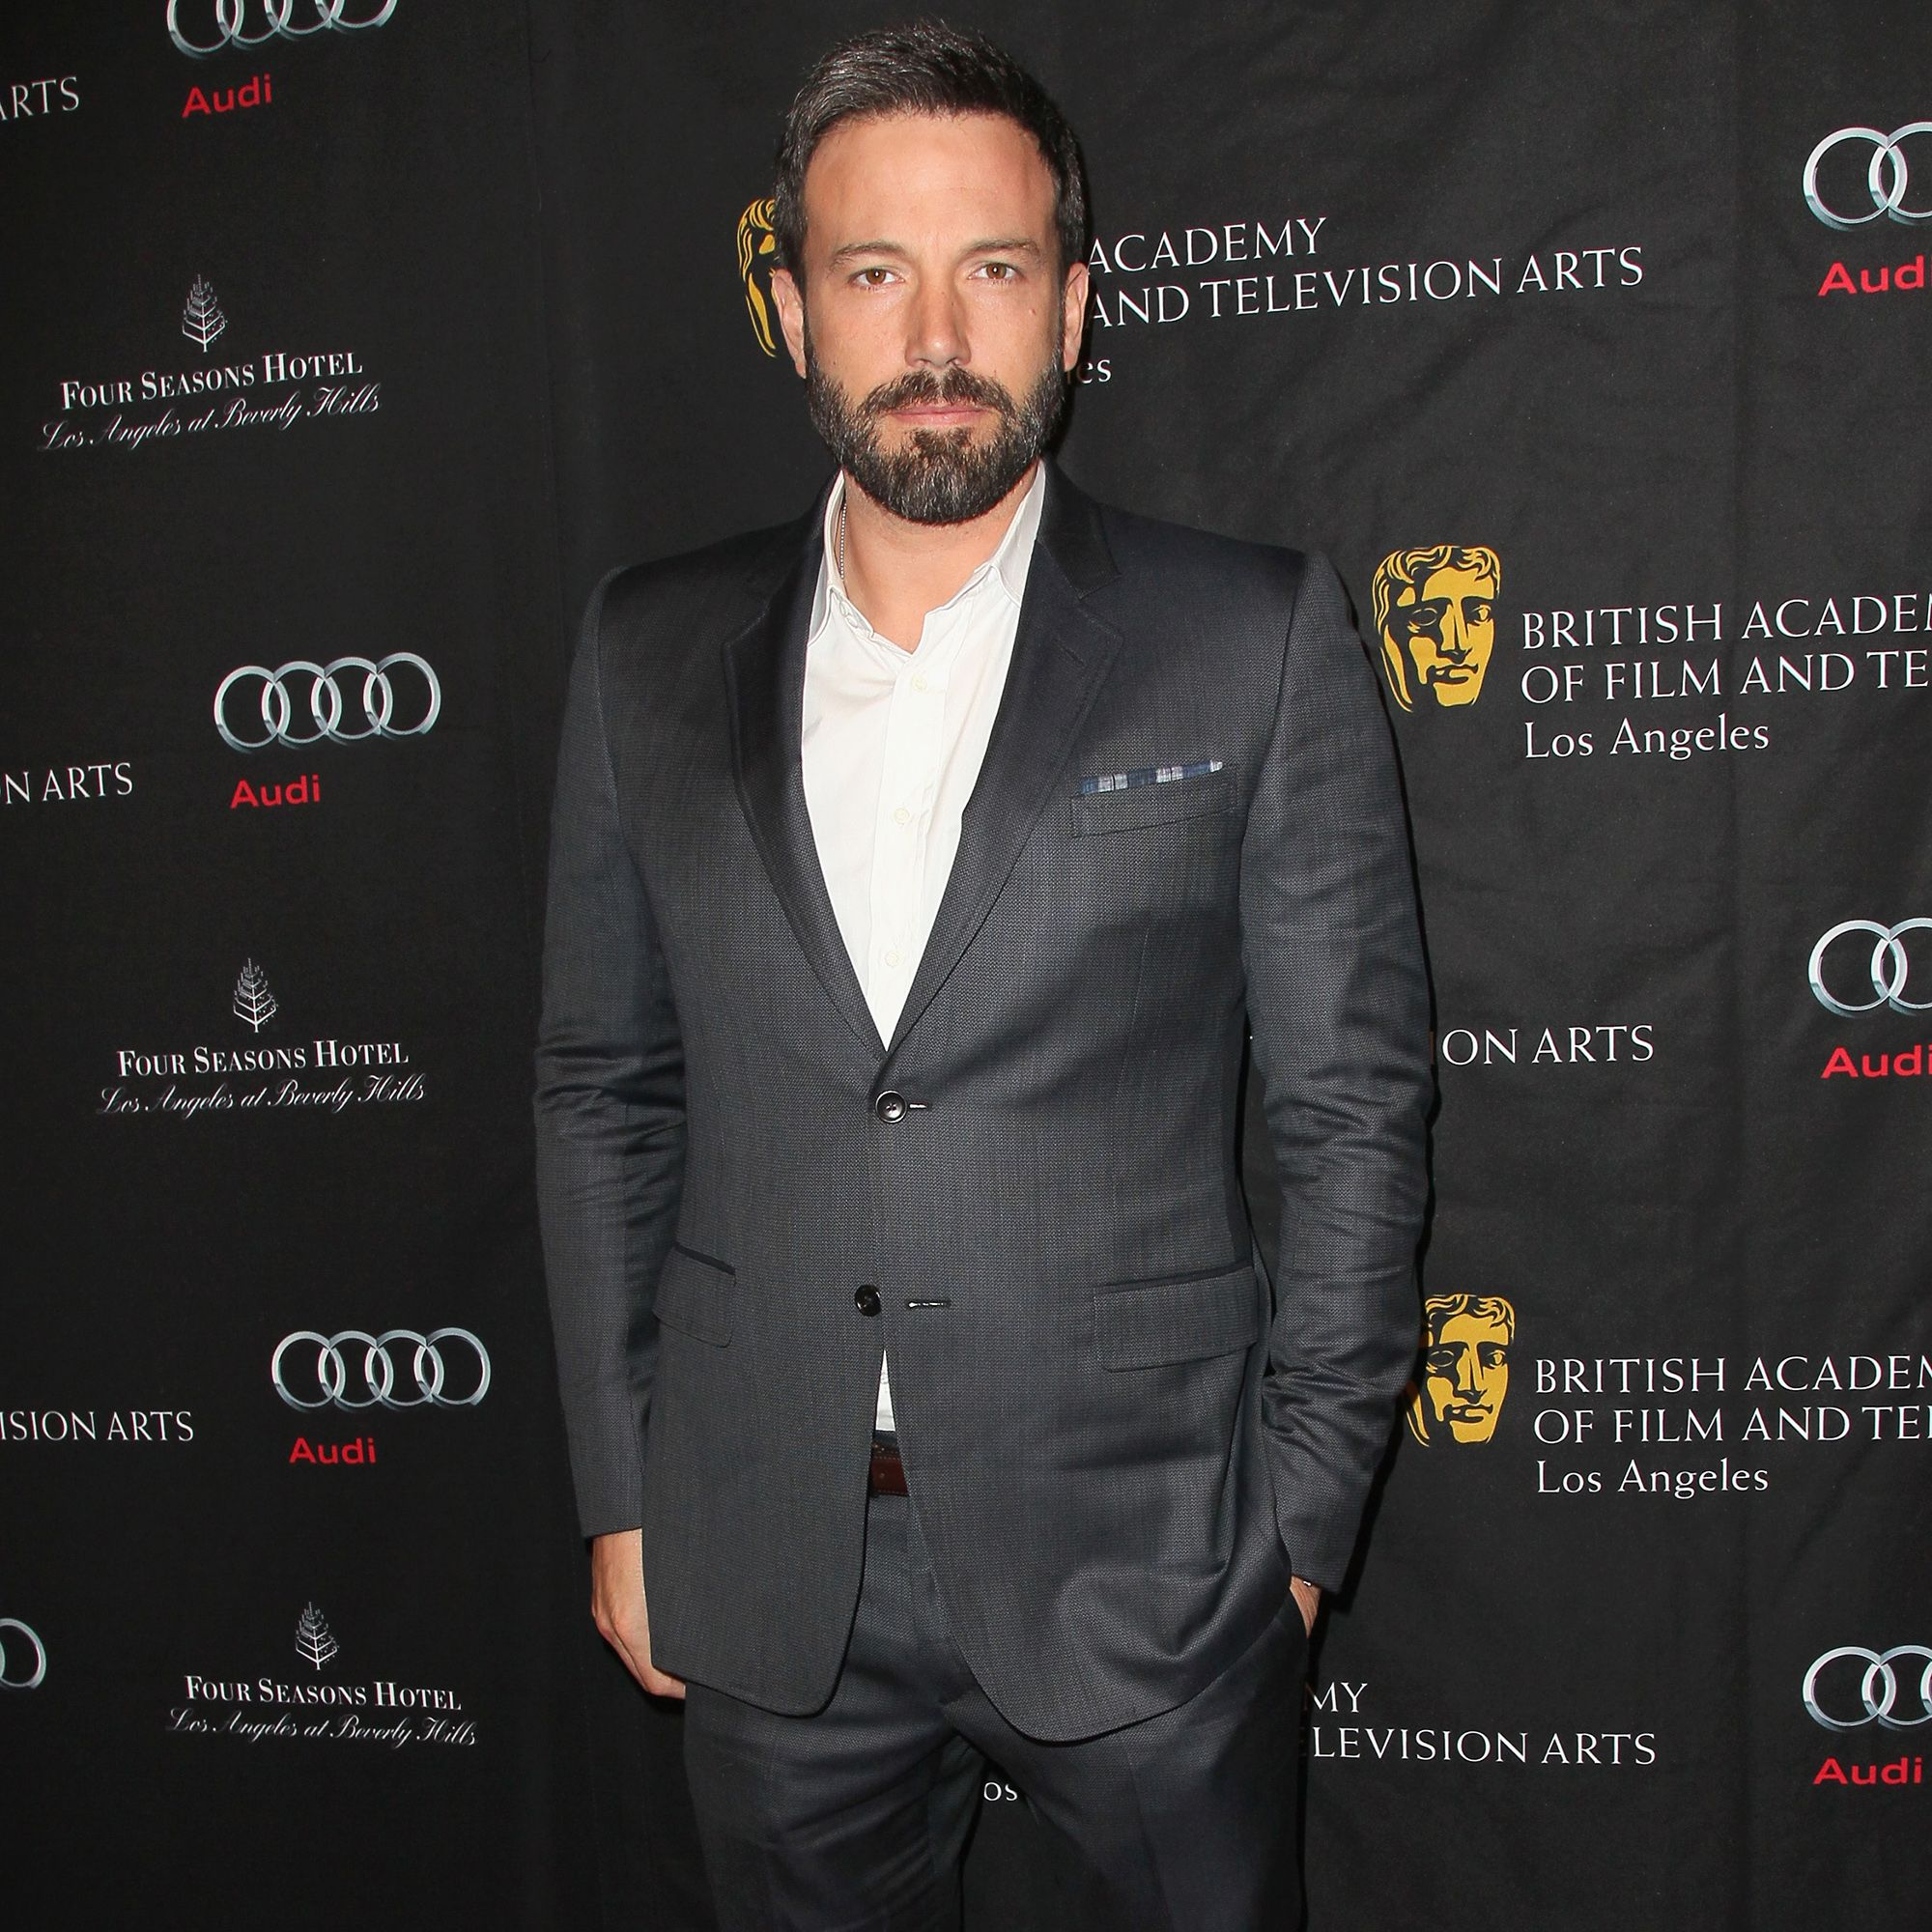 LOS ANGELES, CA - JANUARY 12:  Actor/Director Ben Affleck arrives at the BAFTA Los Angeles 2013 Awards Season Tea Party held at the Four Seasons Hotel Los Angeles on January 12, 2013 in Los Angeles, California.  (Photo by David Livingston/Getty Images)